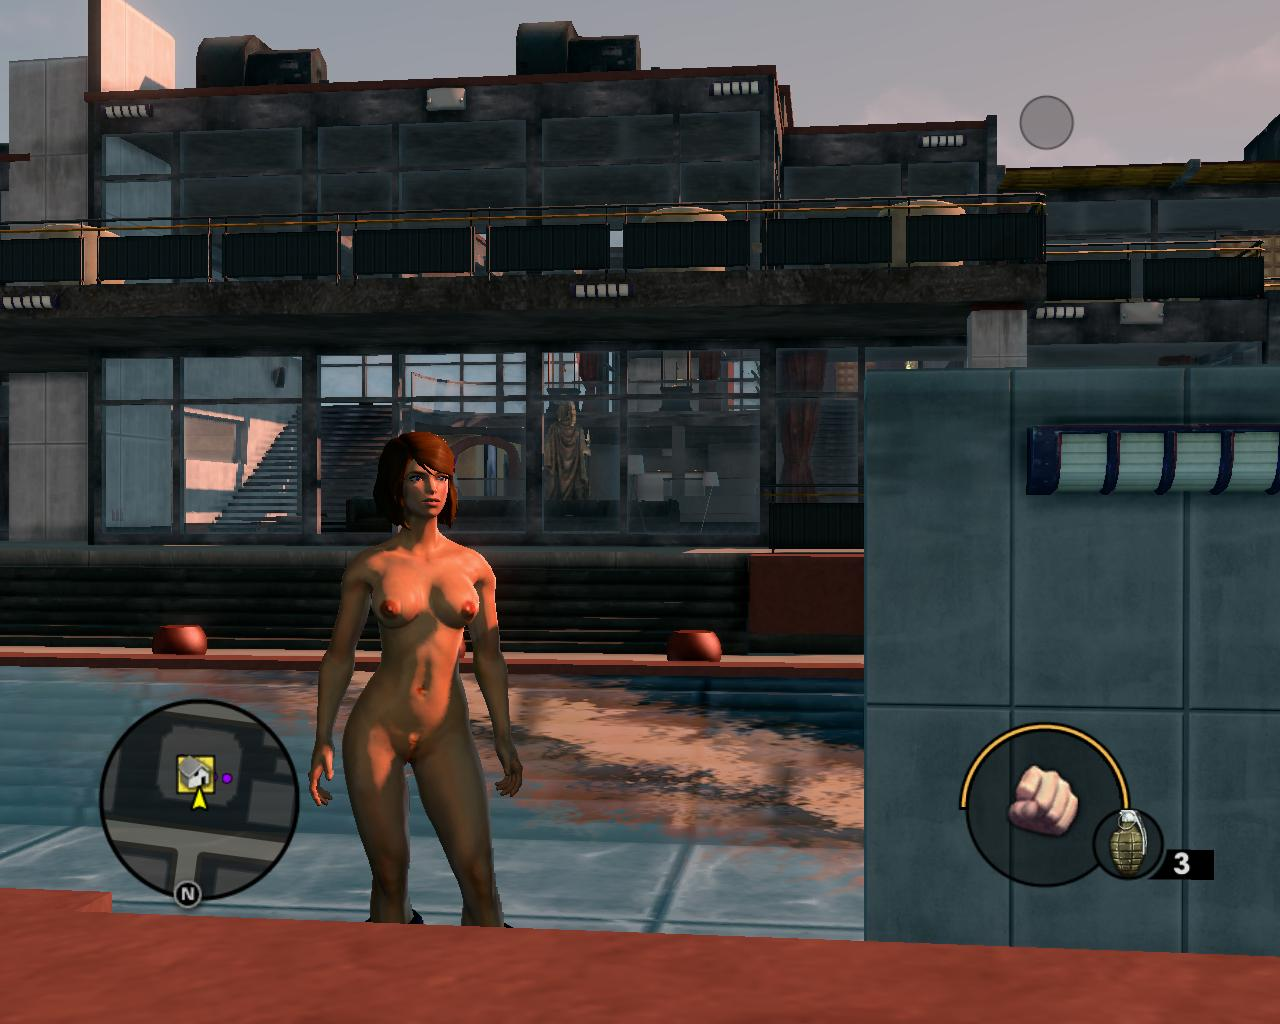 Saints row upskirt, people having but sex naked